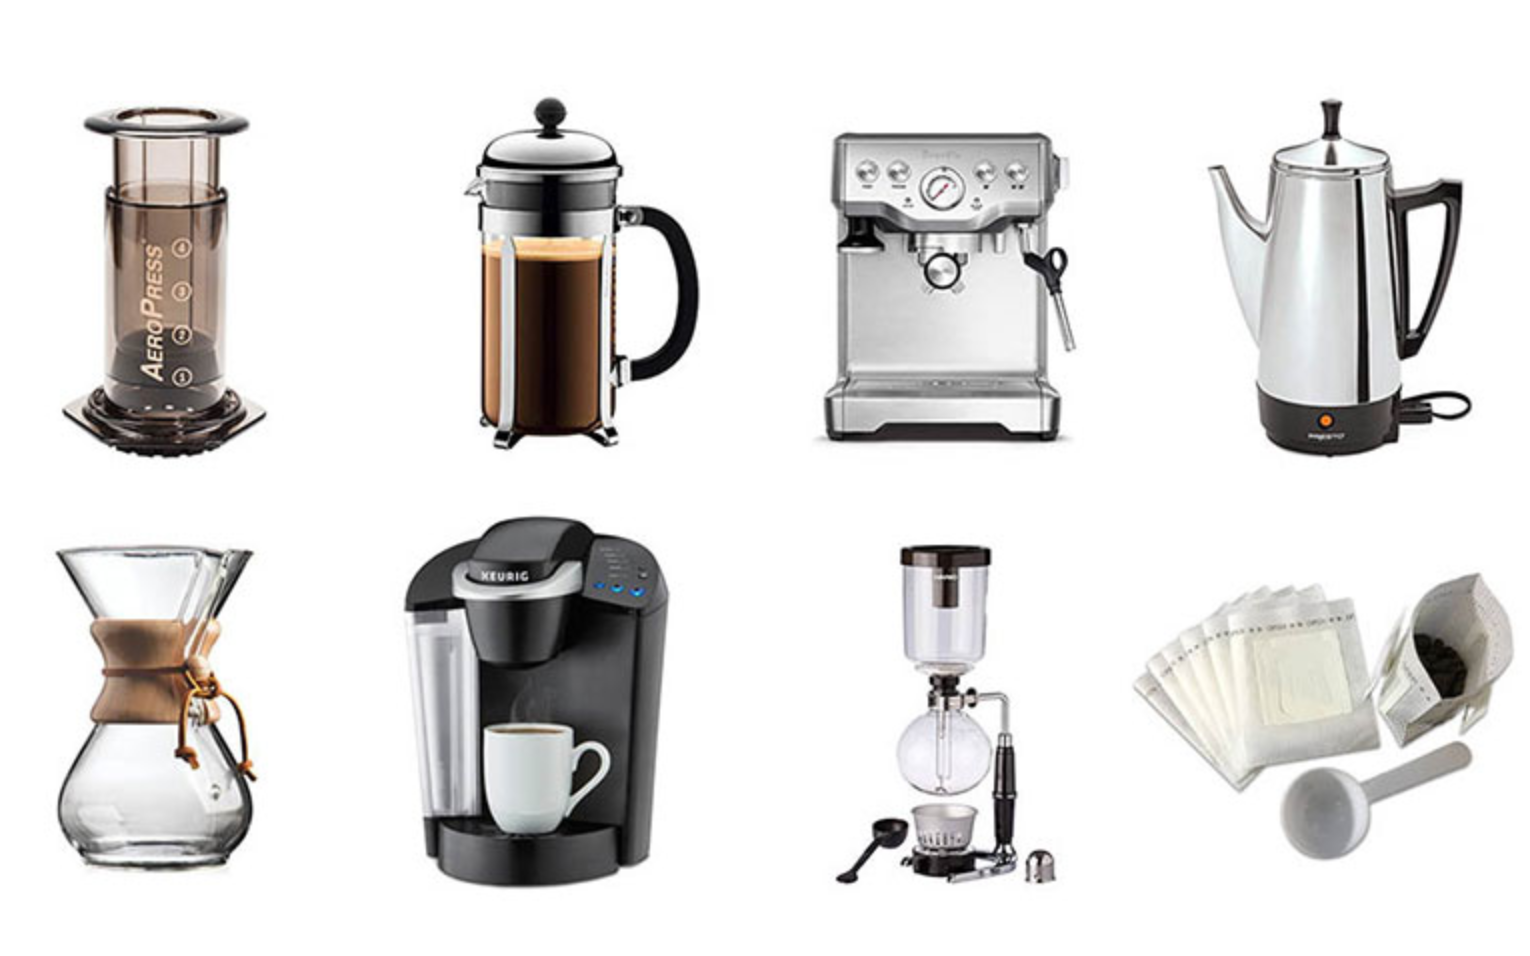 How to CARE OF A COFFEE MAKER?